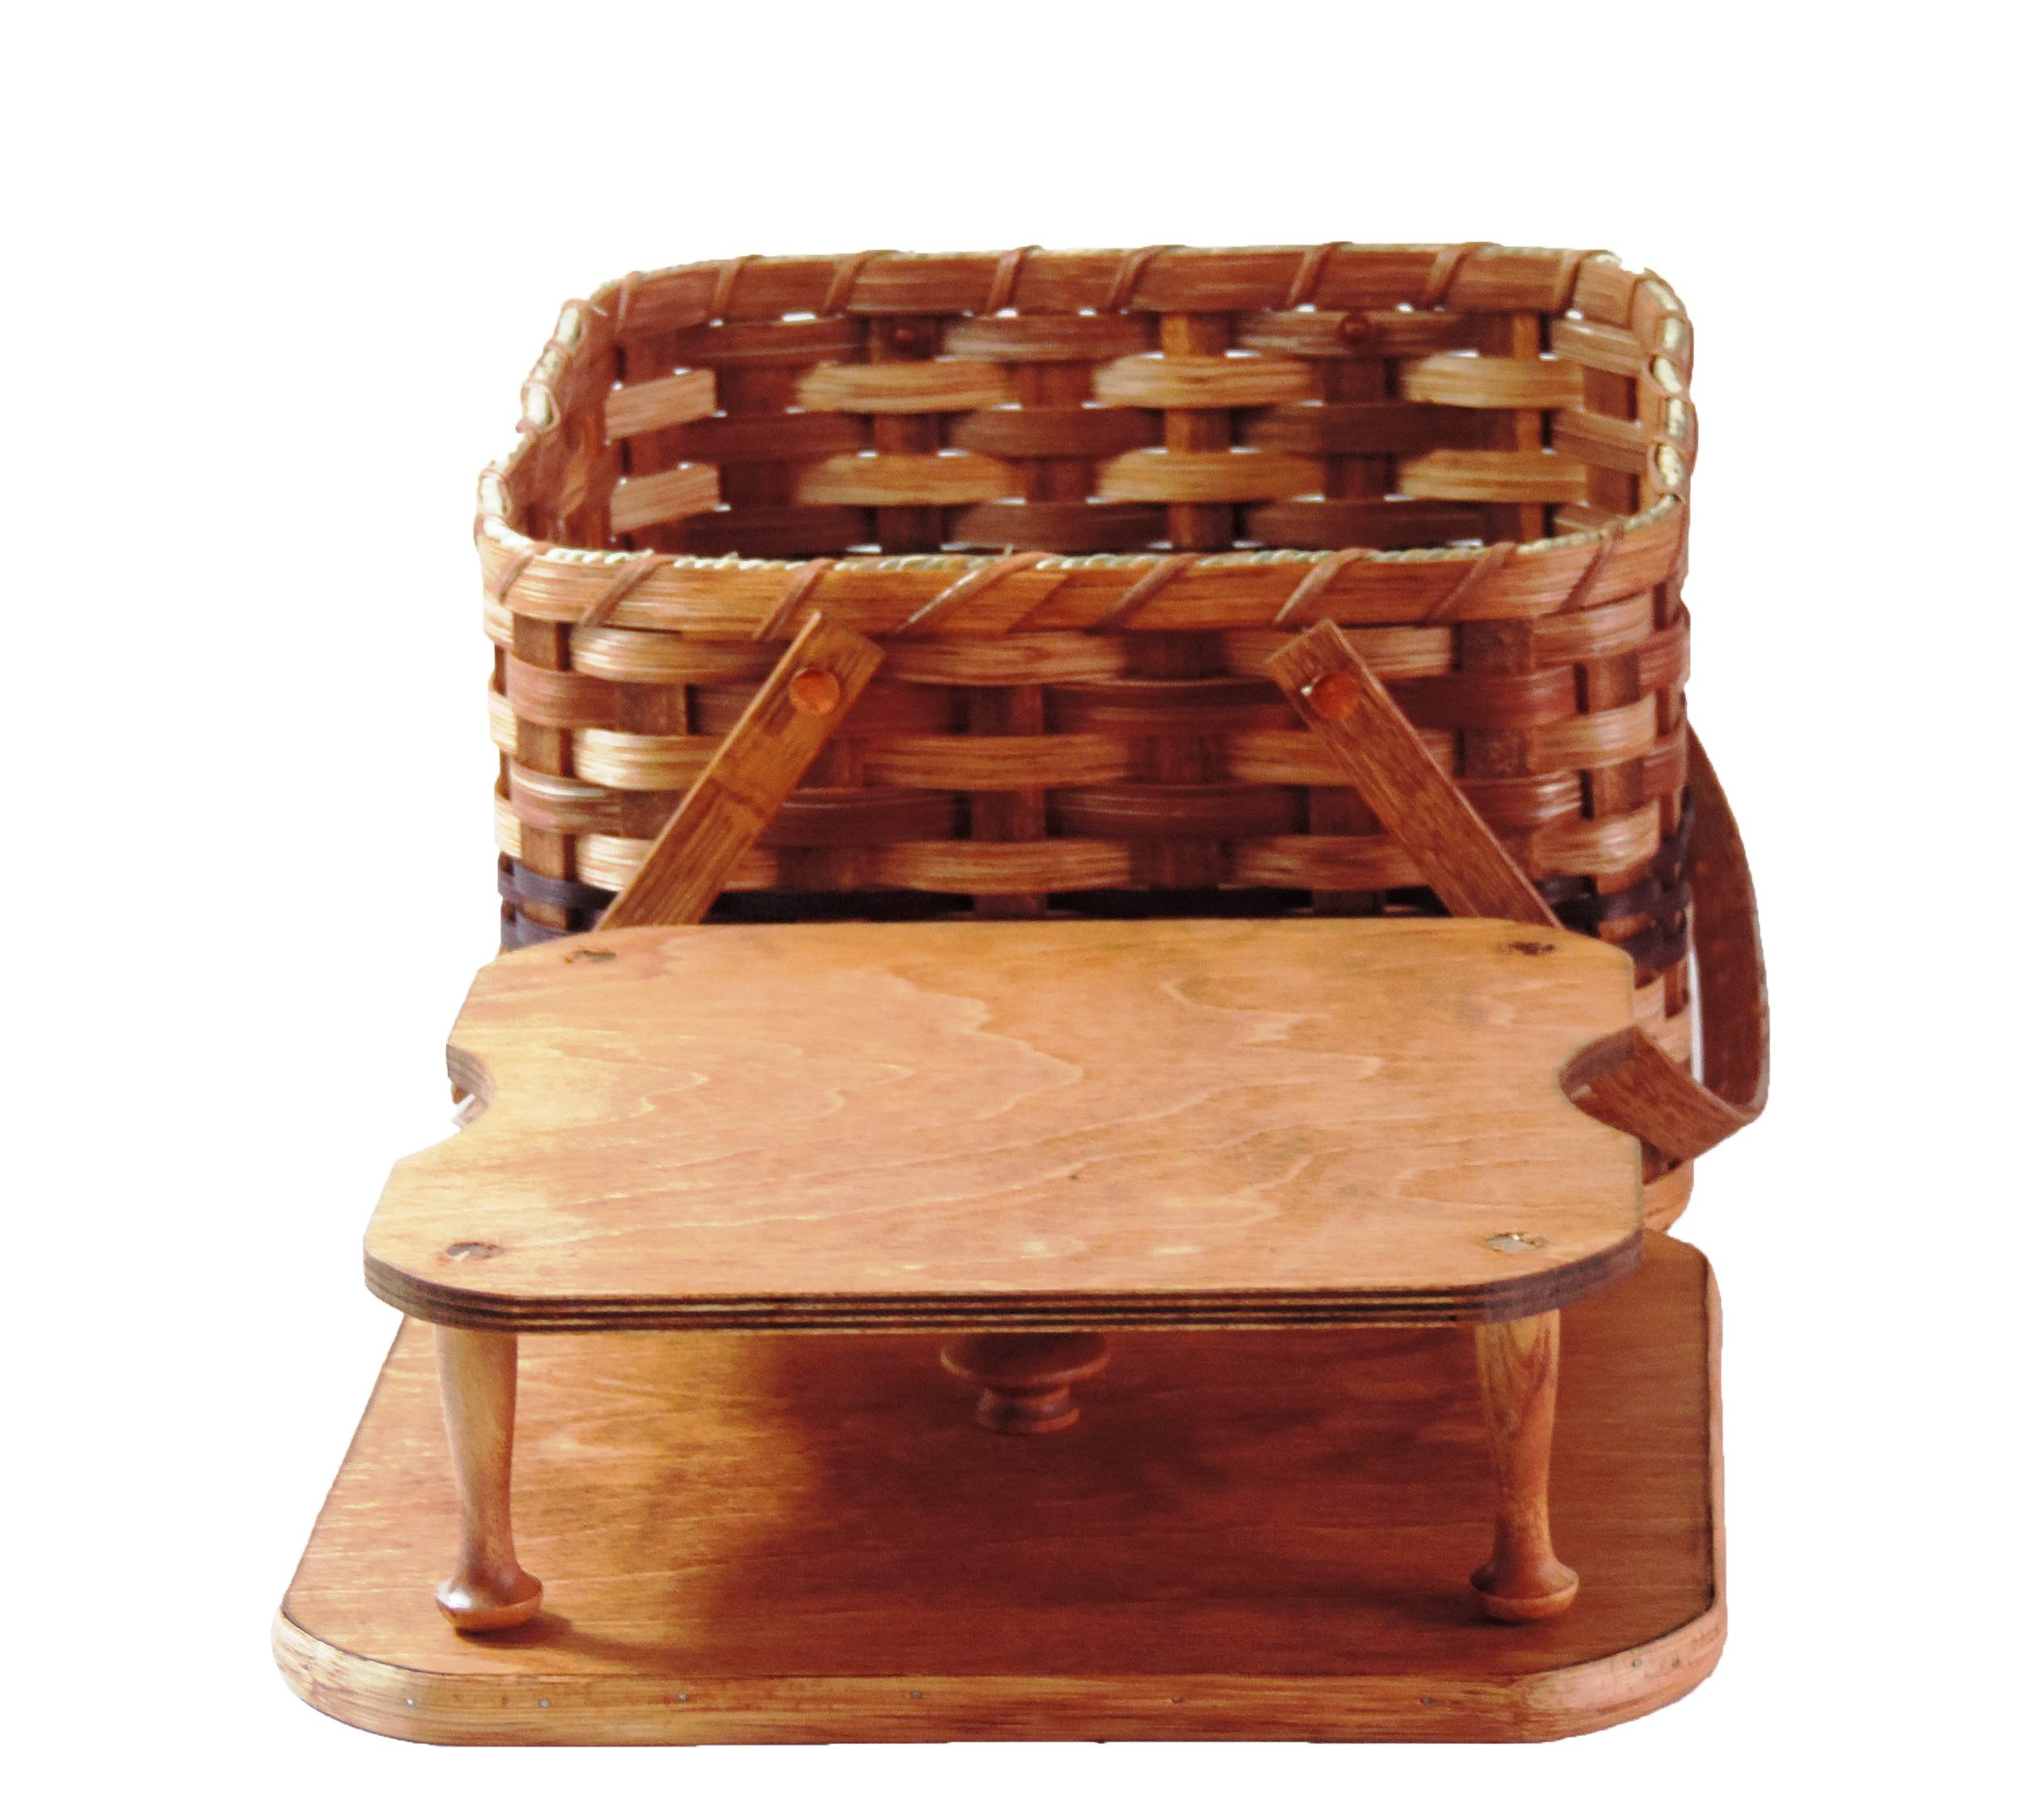 AMISH BASKETS AND BEYOND Amish Handmade Square Double Pie Basket w/Inside Tray, Lid, and Two Swinging Carrier Handles (Wine w/o Liner, Regular)